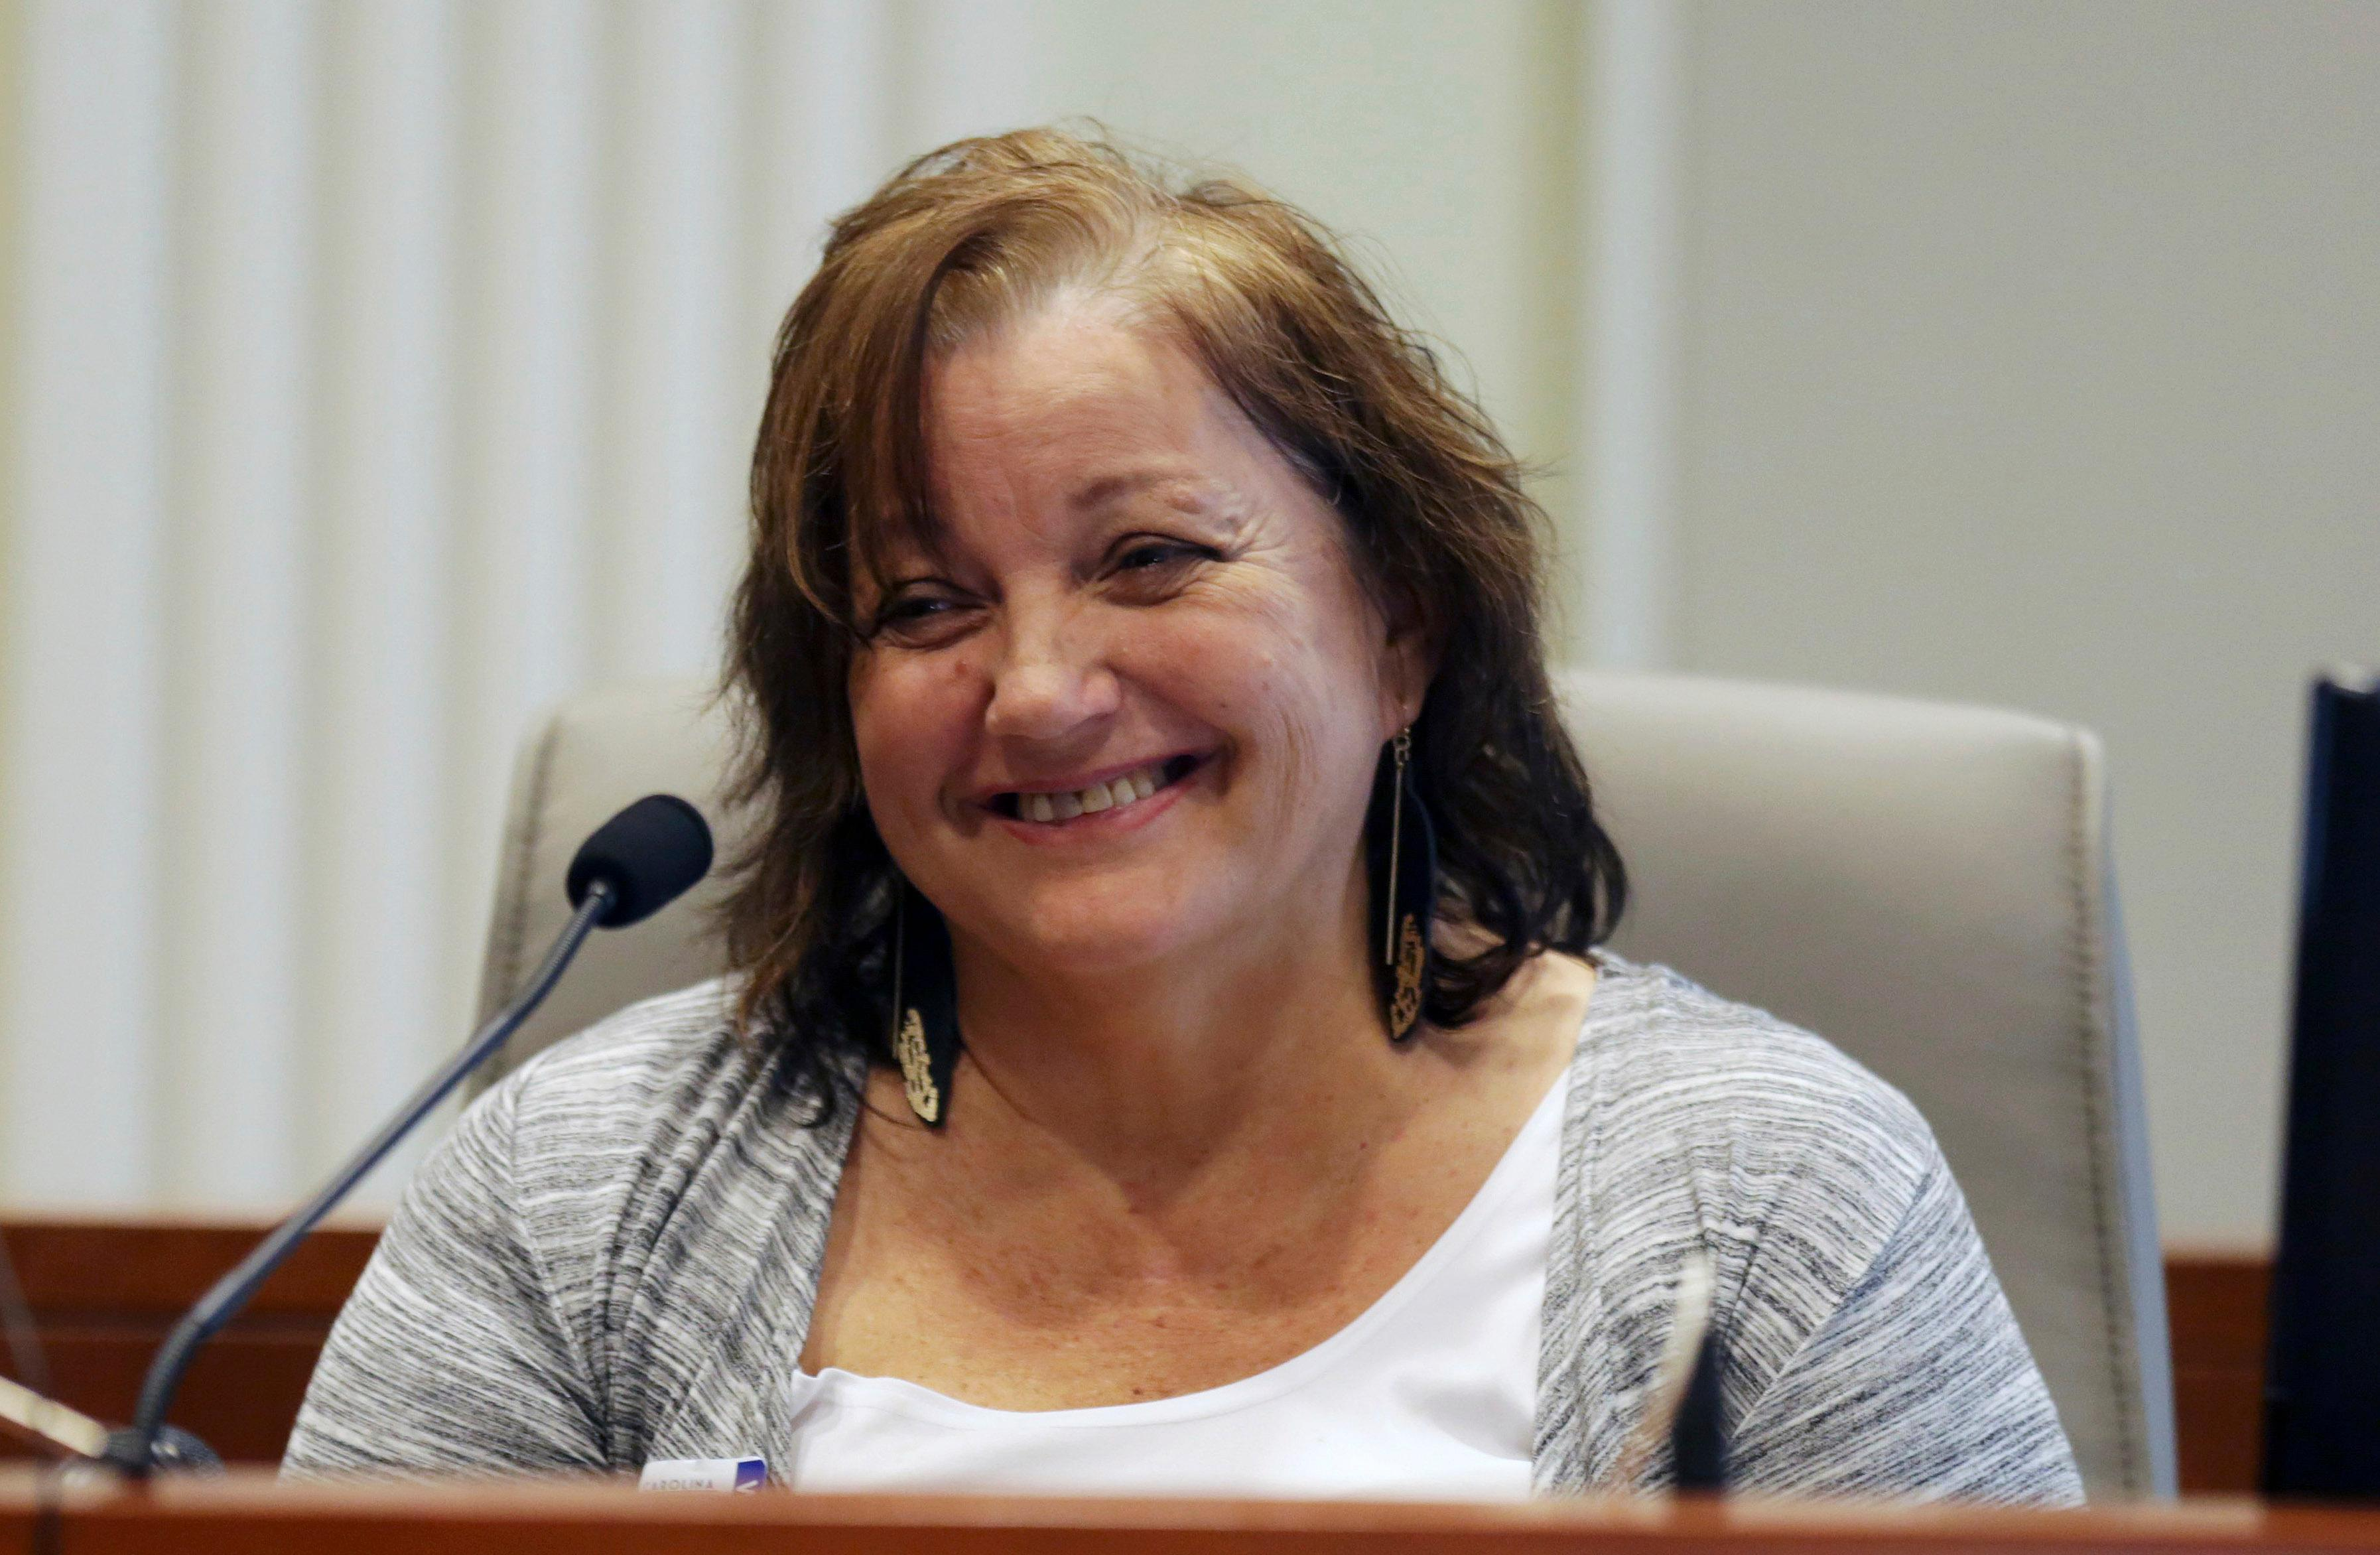 Sandra Dowless laughs under cross-examination during the public evidentiary hearing on the 9th Congressional District investigation at the North Carolina State Bar Monday, Feb. 18, 2019, in Raleigh. Dowless was surprised by evidence that McCrae Dowless was paid nearly $84,000 in consulting fees over five months leading into last year's general election. (Juli Leonard/The News & Observer via AP, Pool)